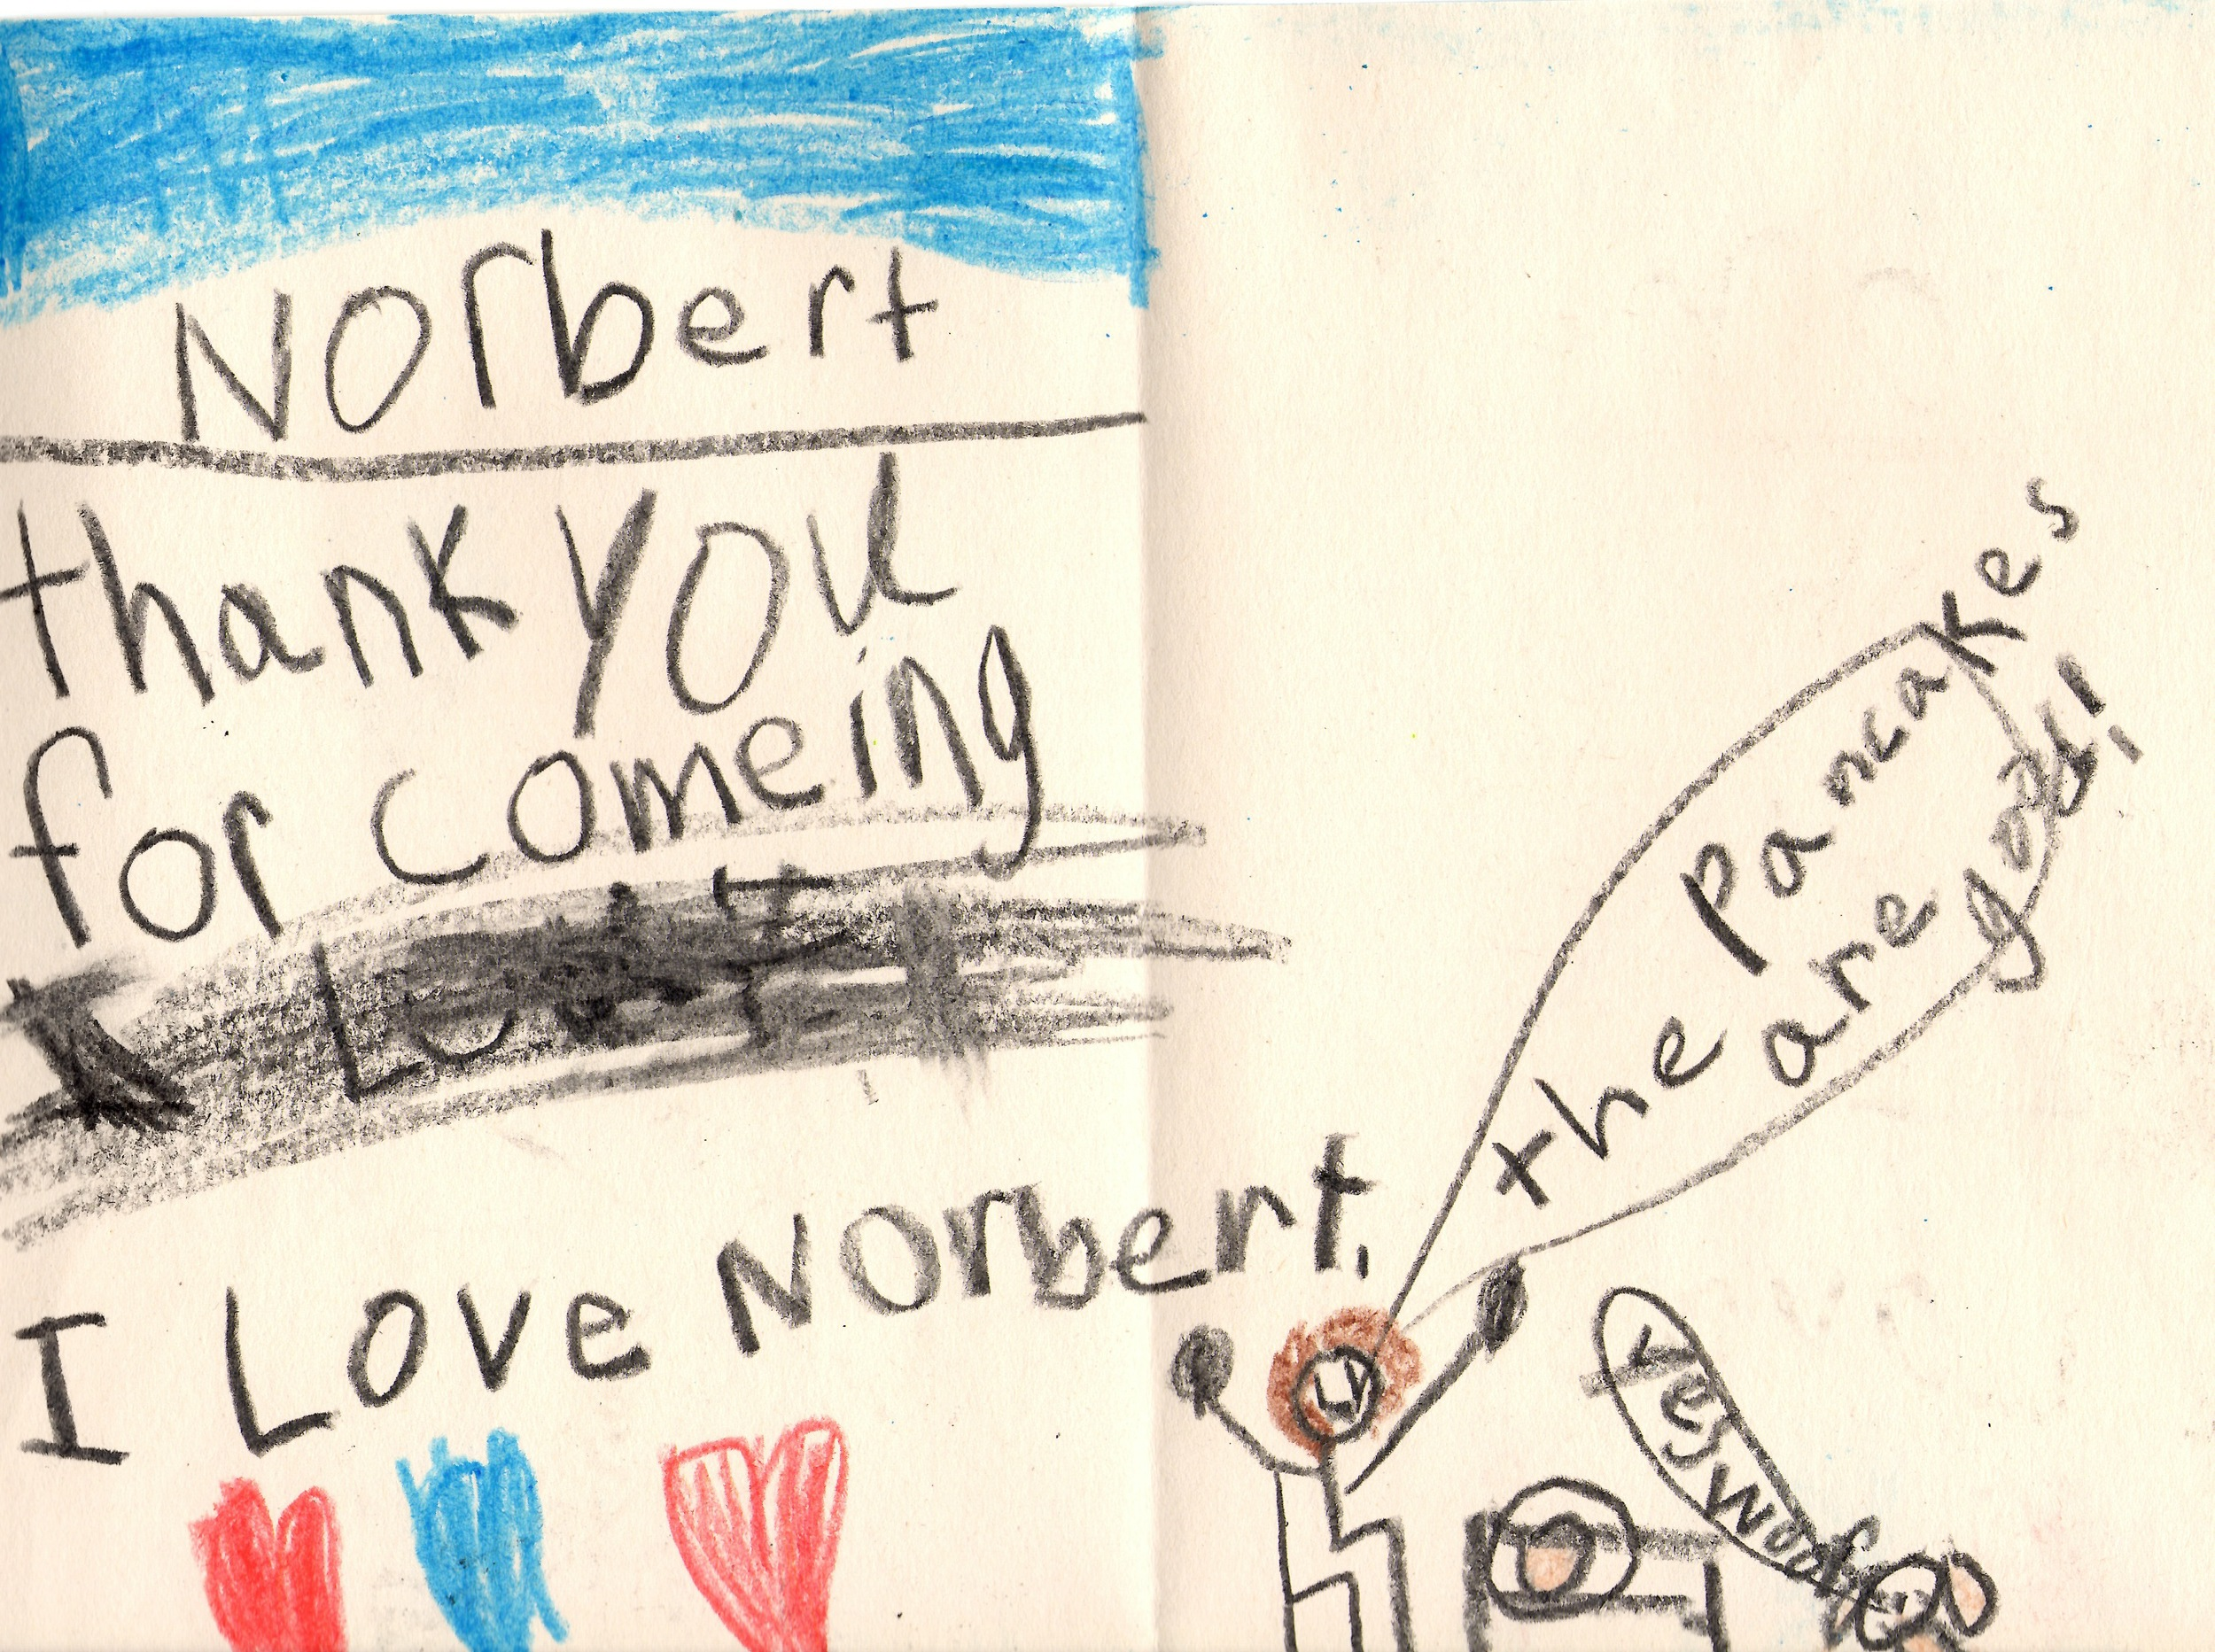 Weymouth Elementary_Norbert Fan Drawing 16_12162013.jpg